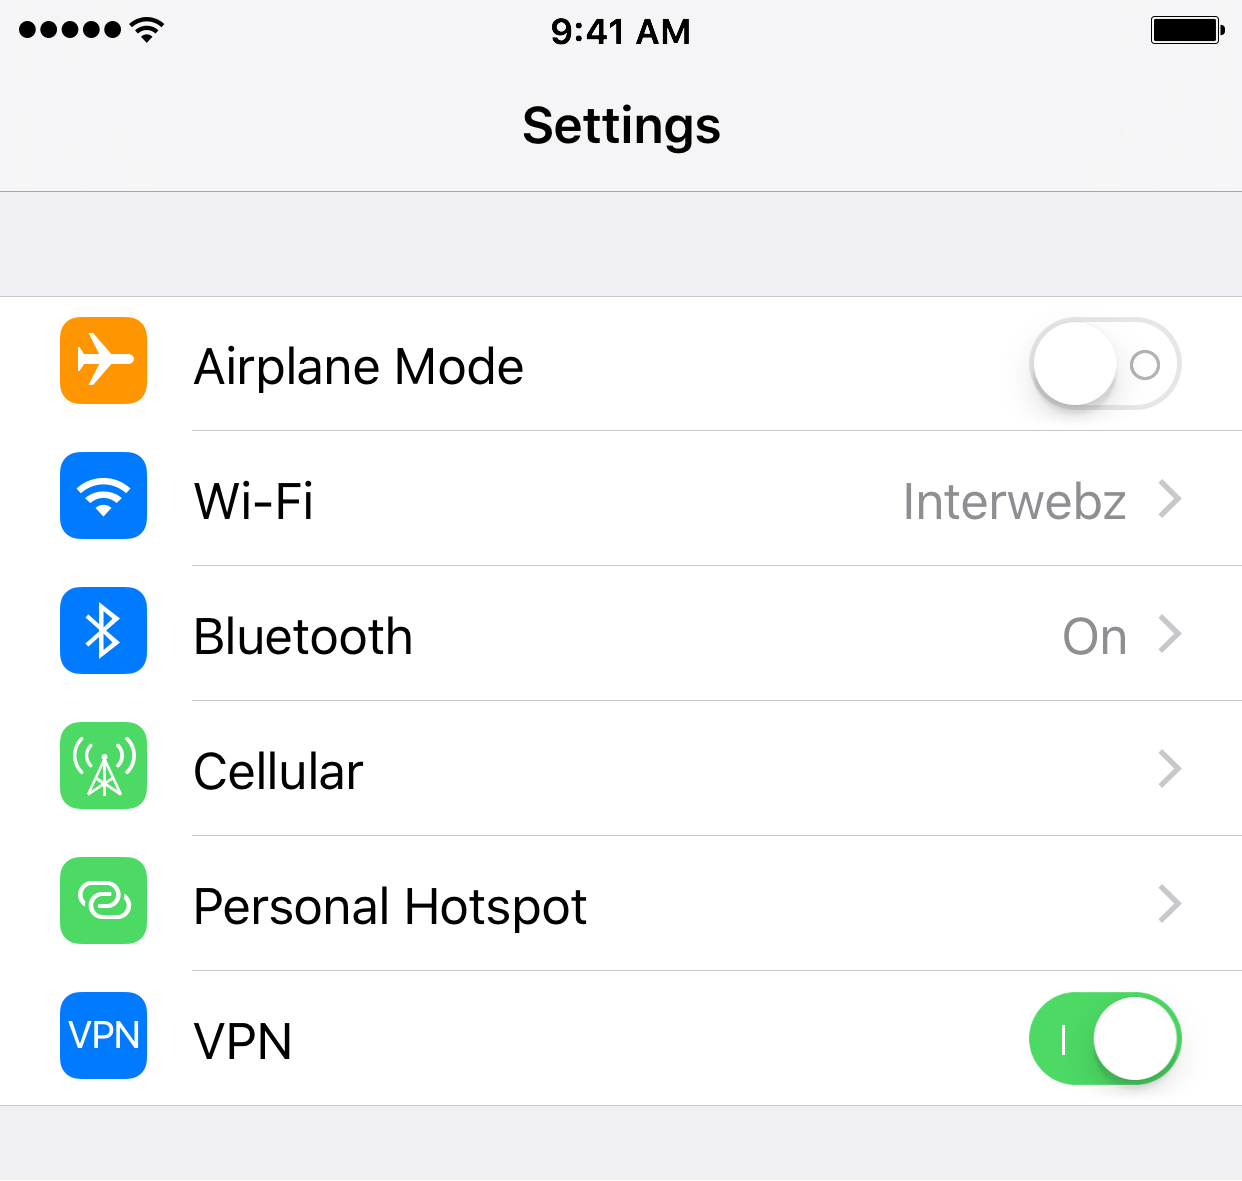 toggle VPN from settings app